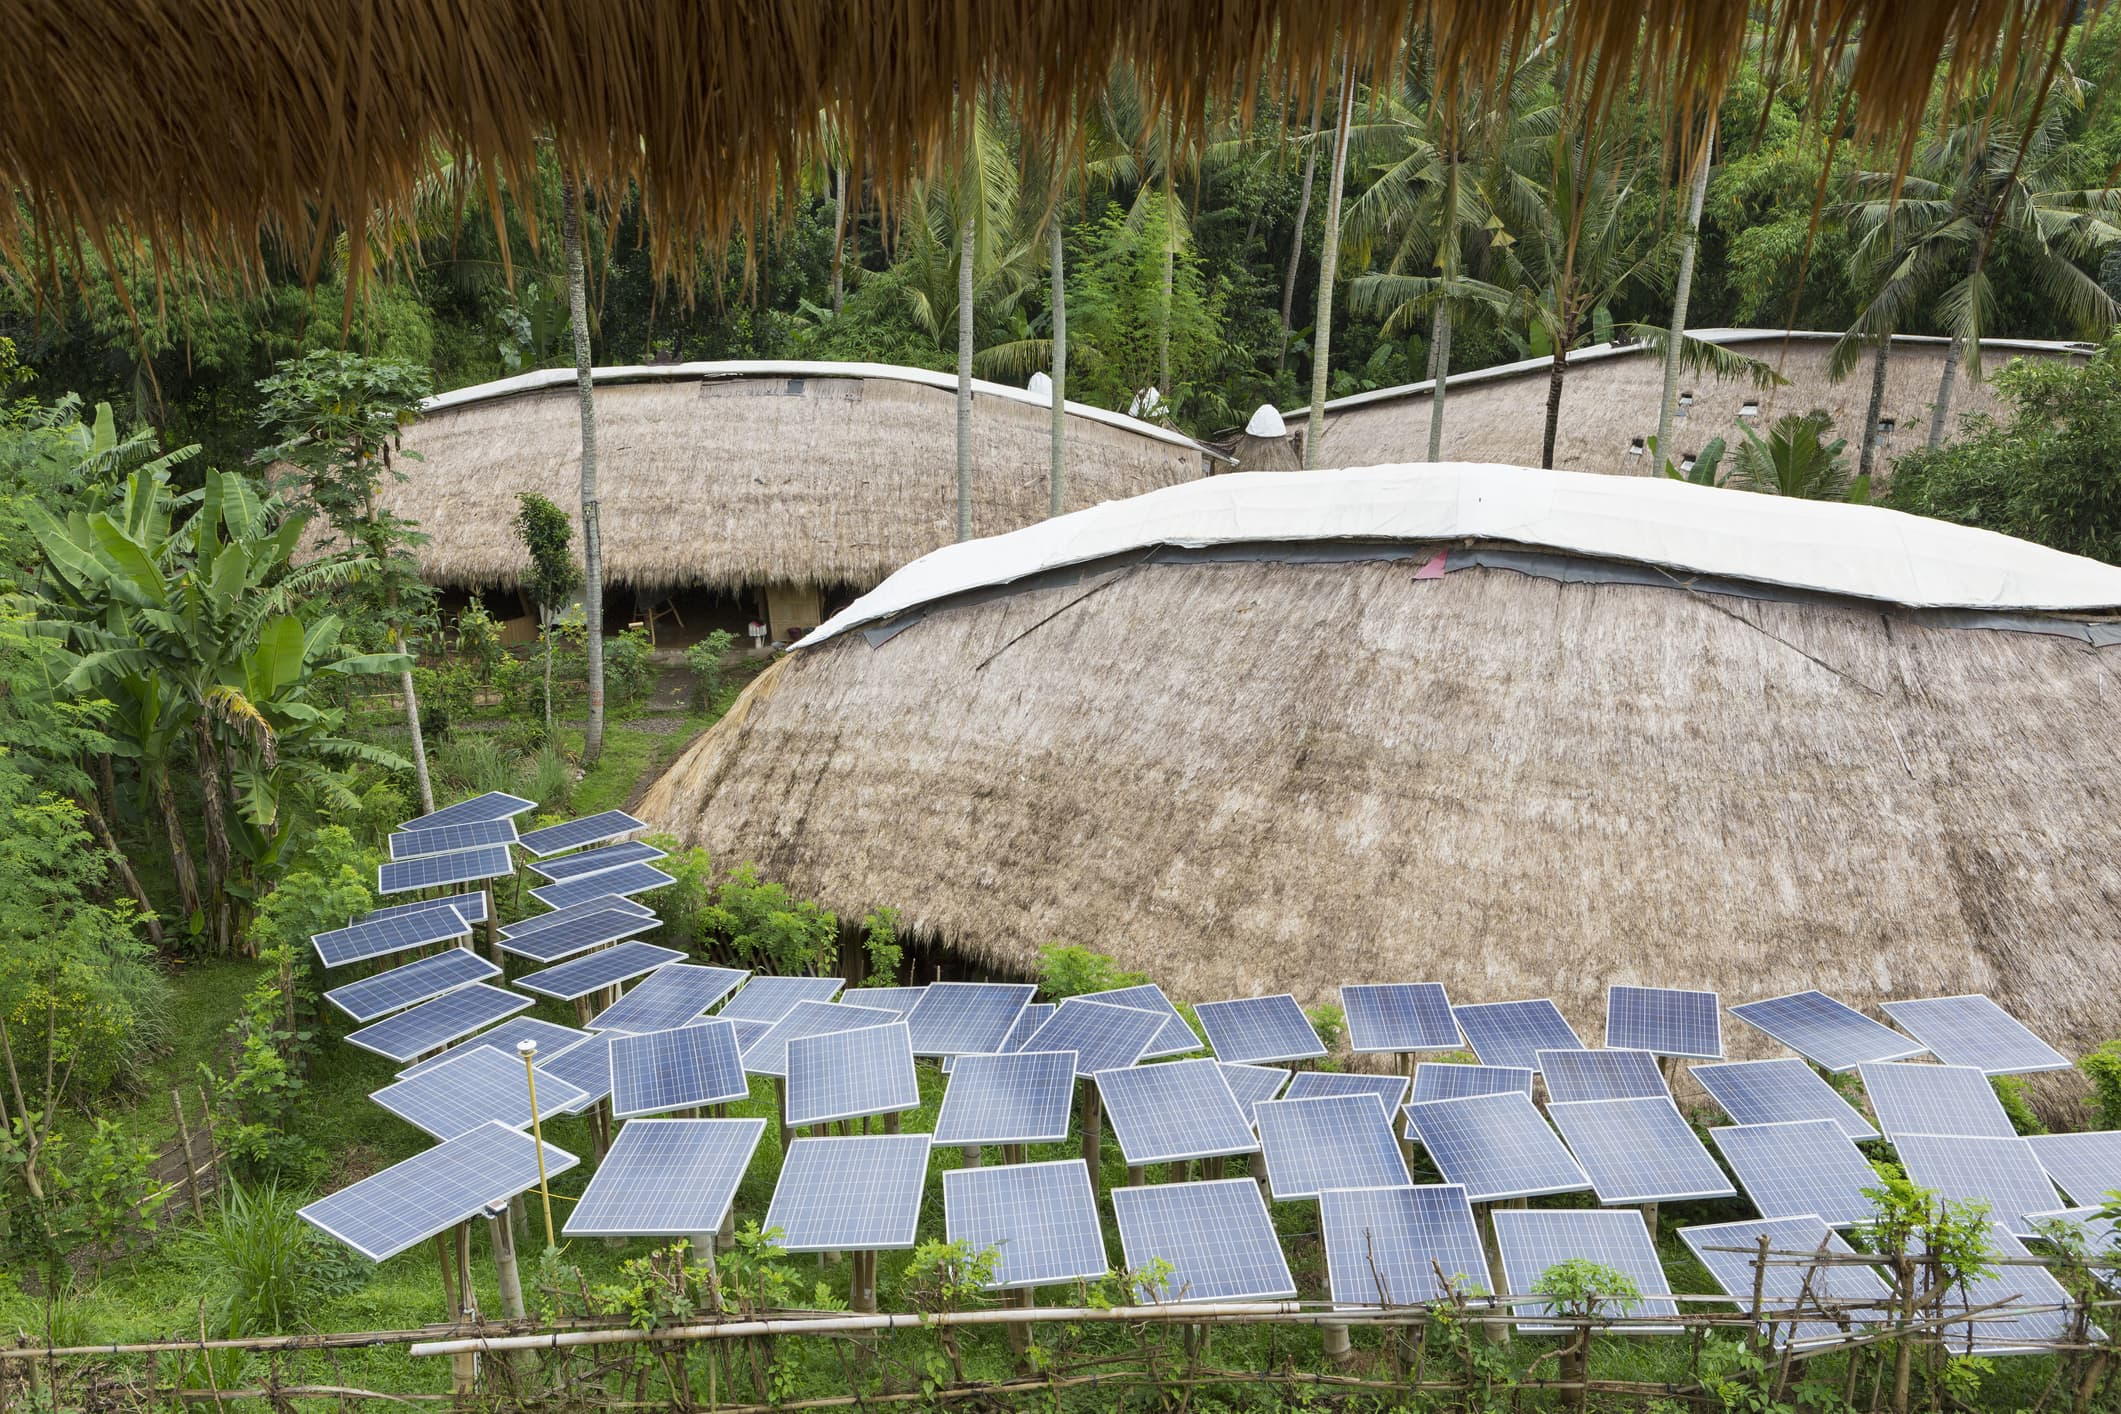 Global sustainability standards are needed to curb climate crisis, says environmental director